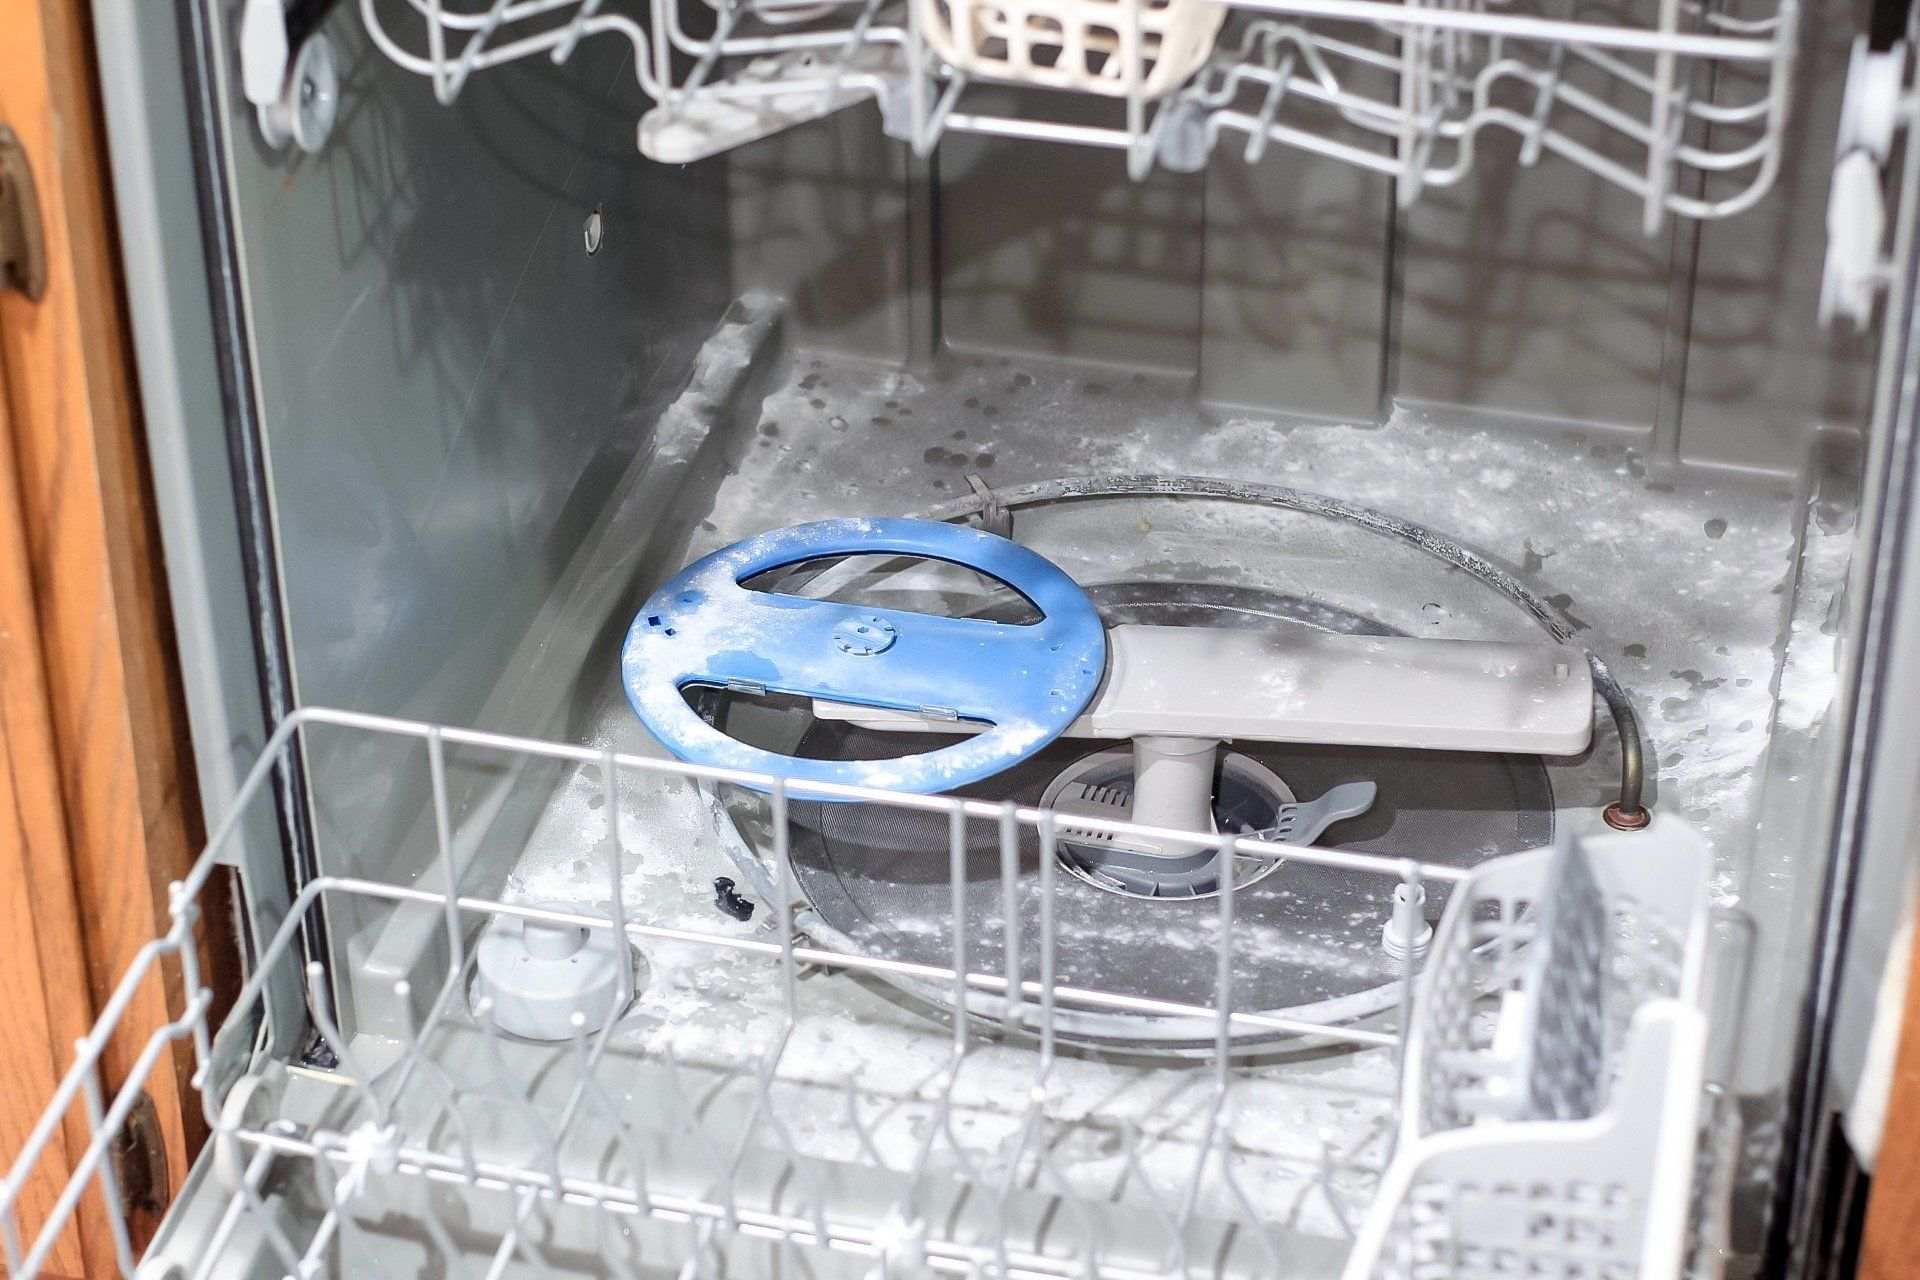 How to clean a smelly dishwasher cleaning your